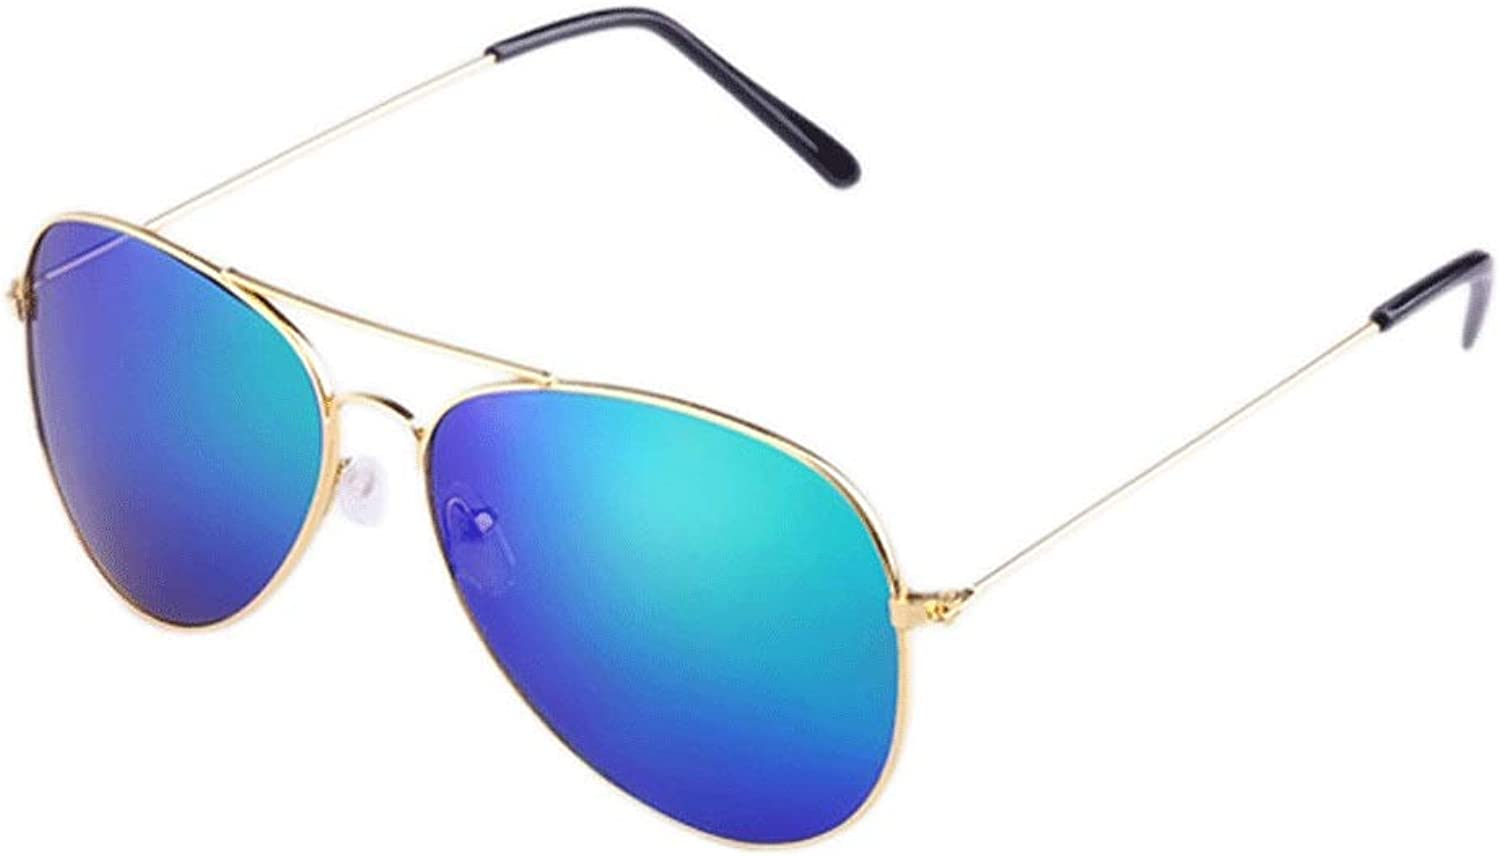 Sunglasses for Women Men Polarized Metal Frame Ultra Light UV 400 Lens Predection Fishing Driving Traveling&Daily Wear(Colour bluee) (color   bluee, Size   Free Size)